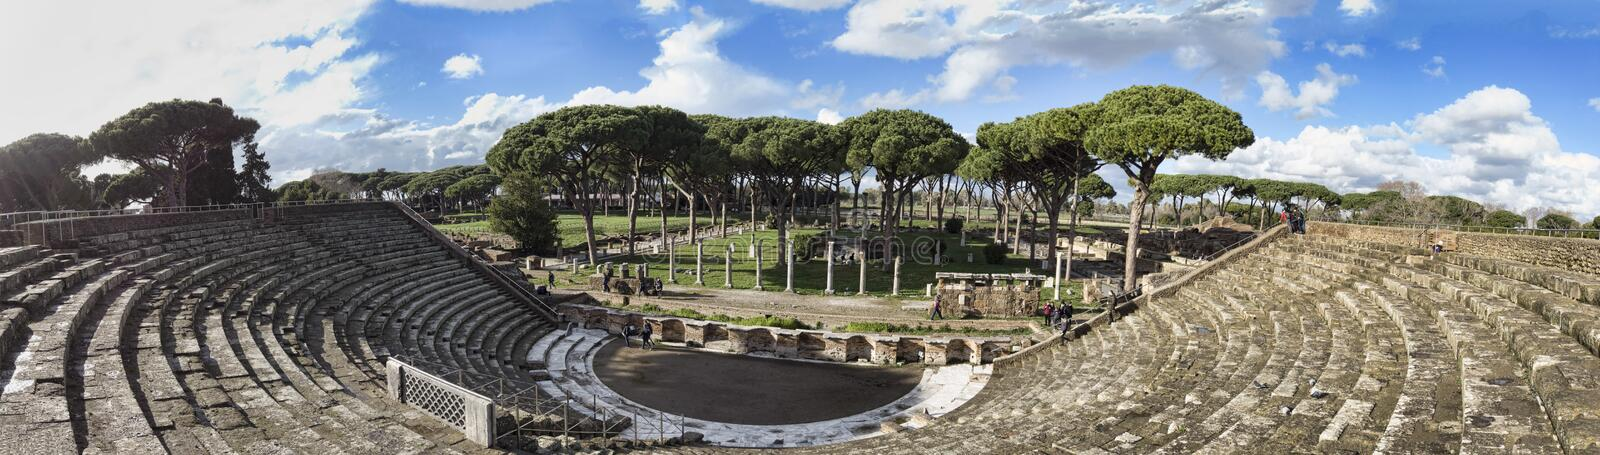 Overview of the Roman theater of Ostia Antica located in the homonymous archaeological excavations - Rome , Italy. Ostia Antica Rome, Italy -February 03, 2019 royalty free stock image